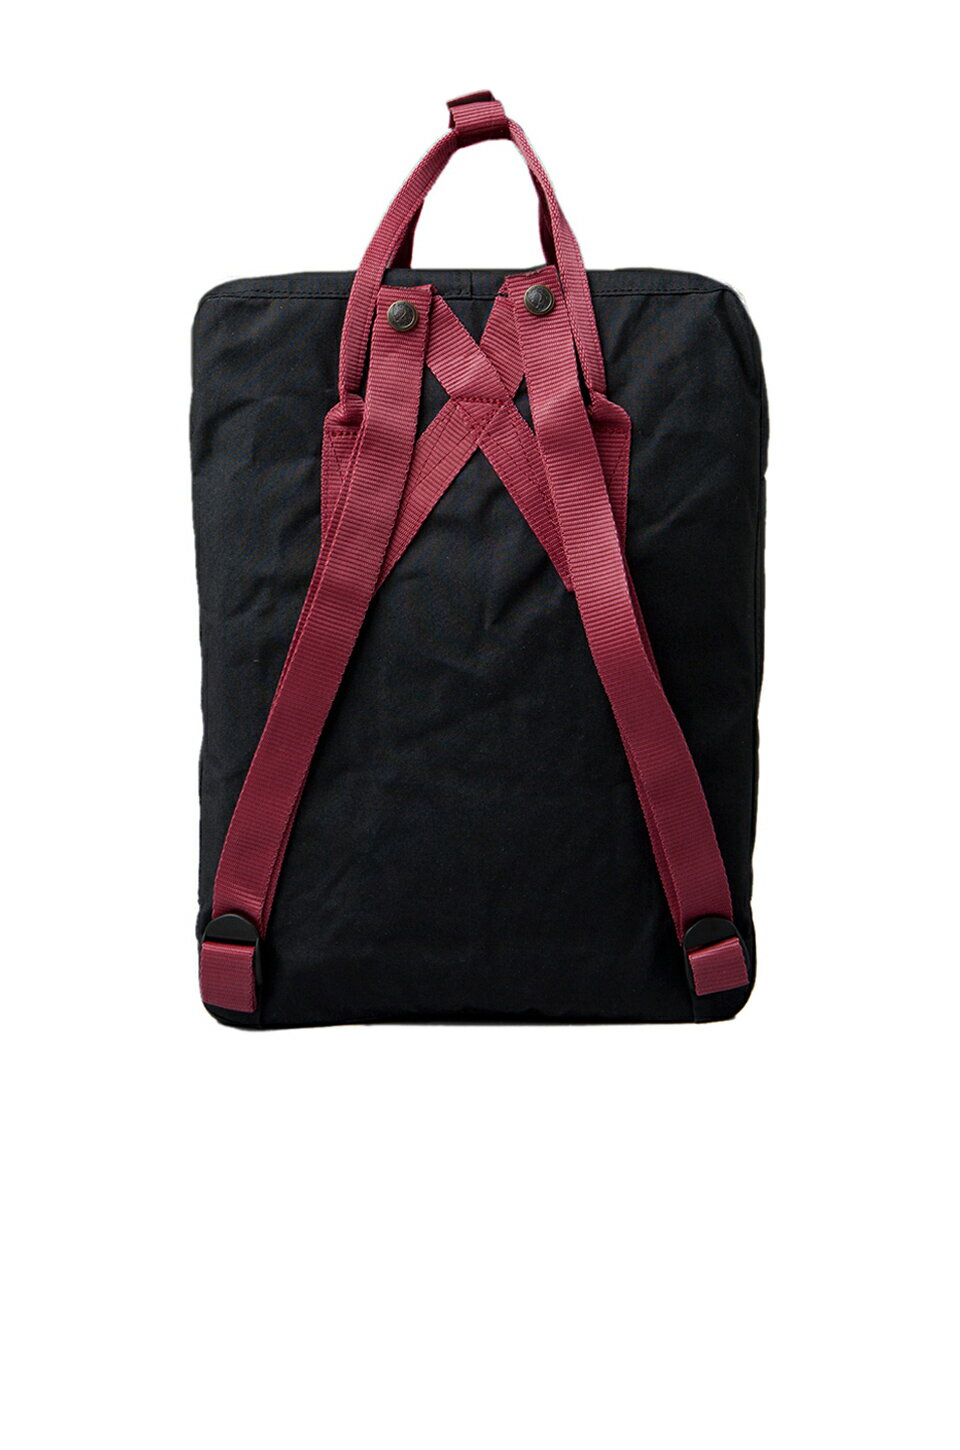 【Fjallraven Kanken 】Kånken Classic 550-326 Black & Ox Red 黑公牛紅 3